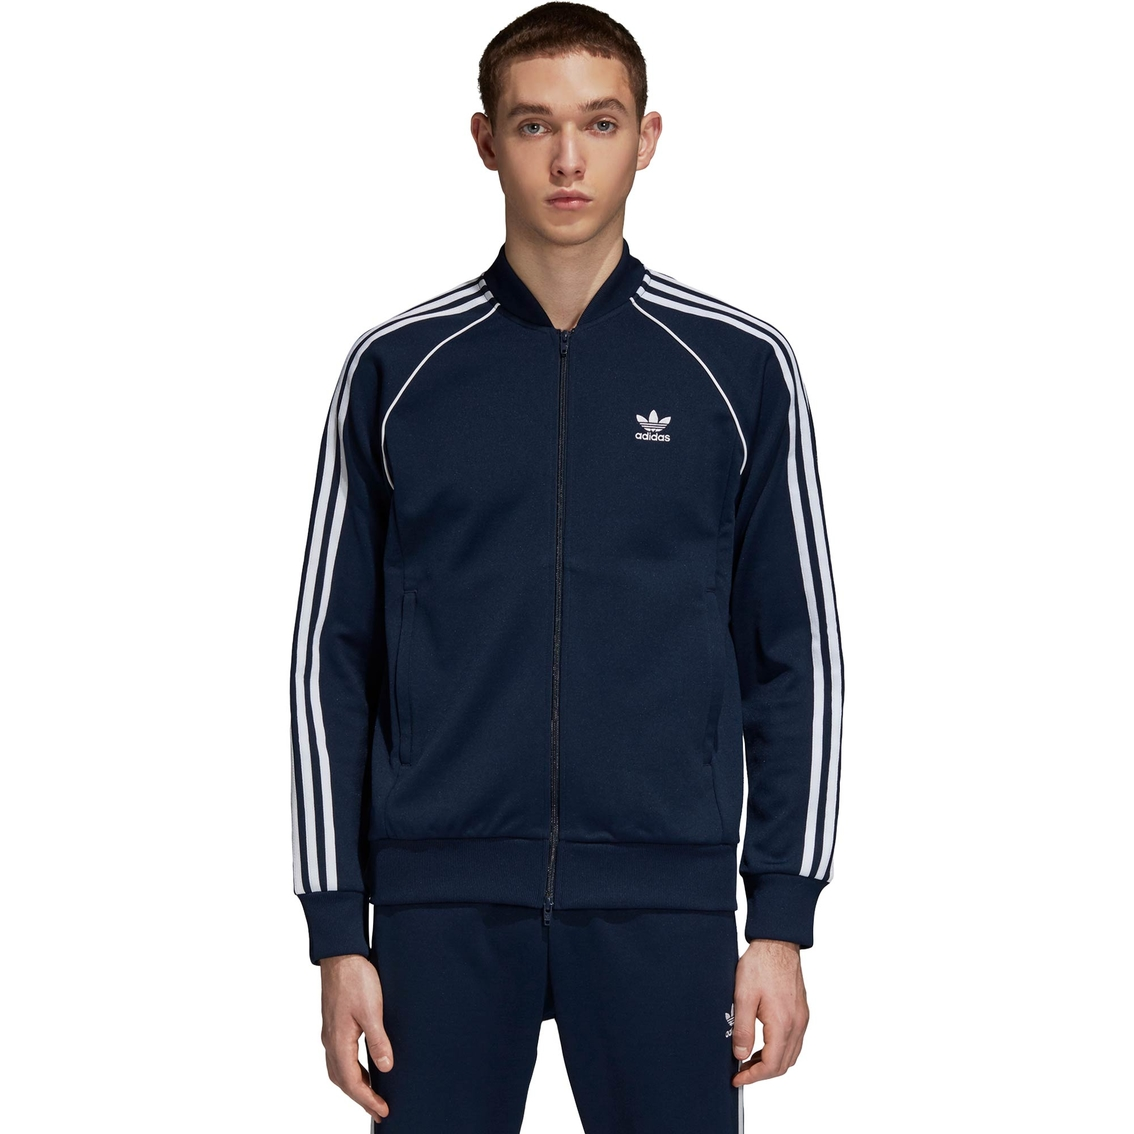 Adidas Sst Track Jacket Hoodies Jackets Apparel Shop The